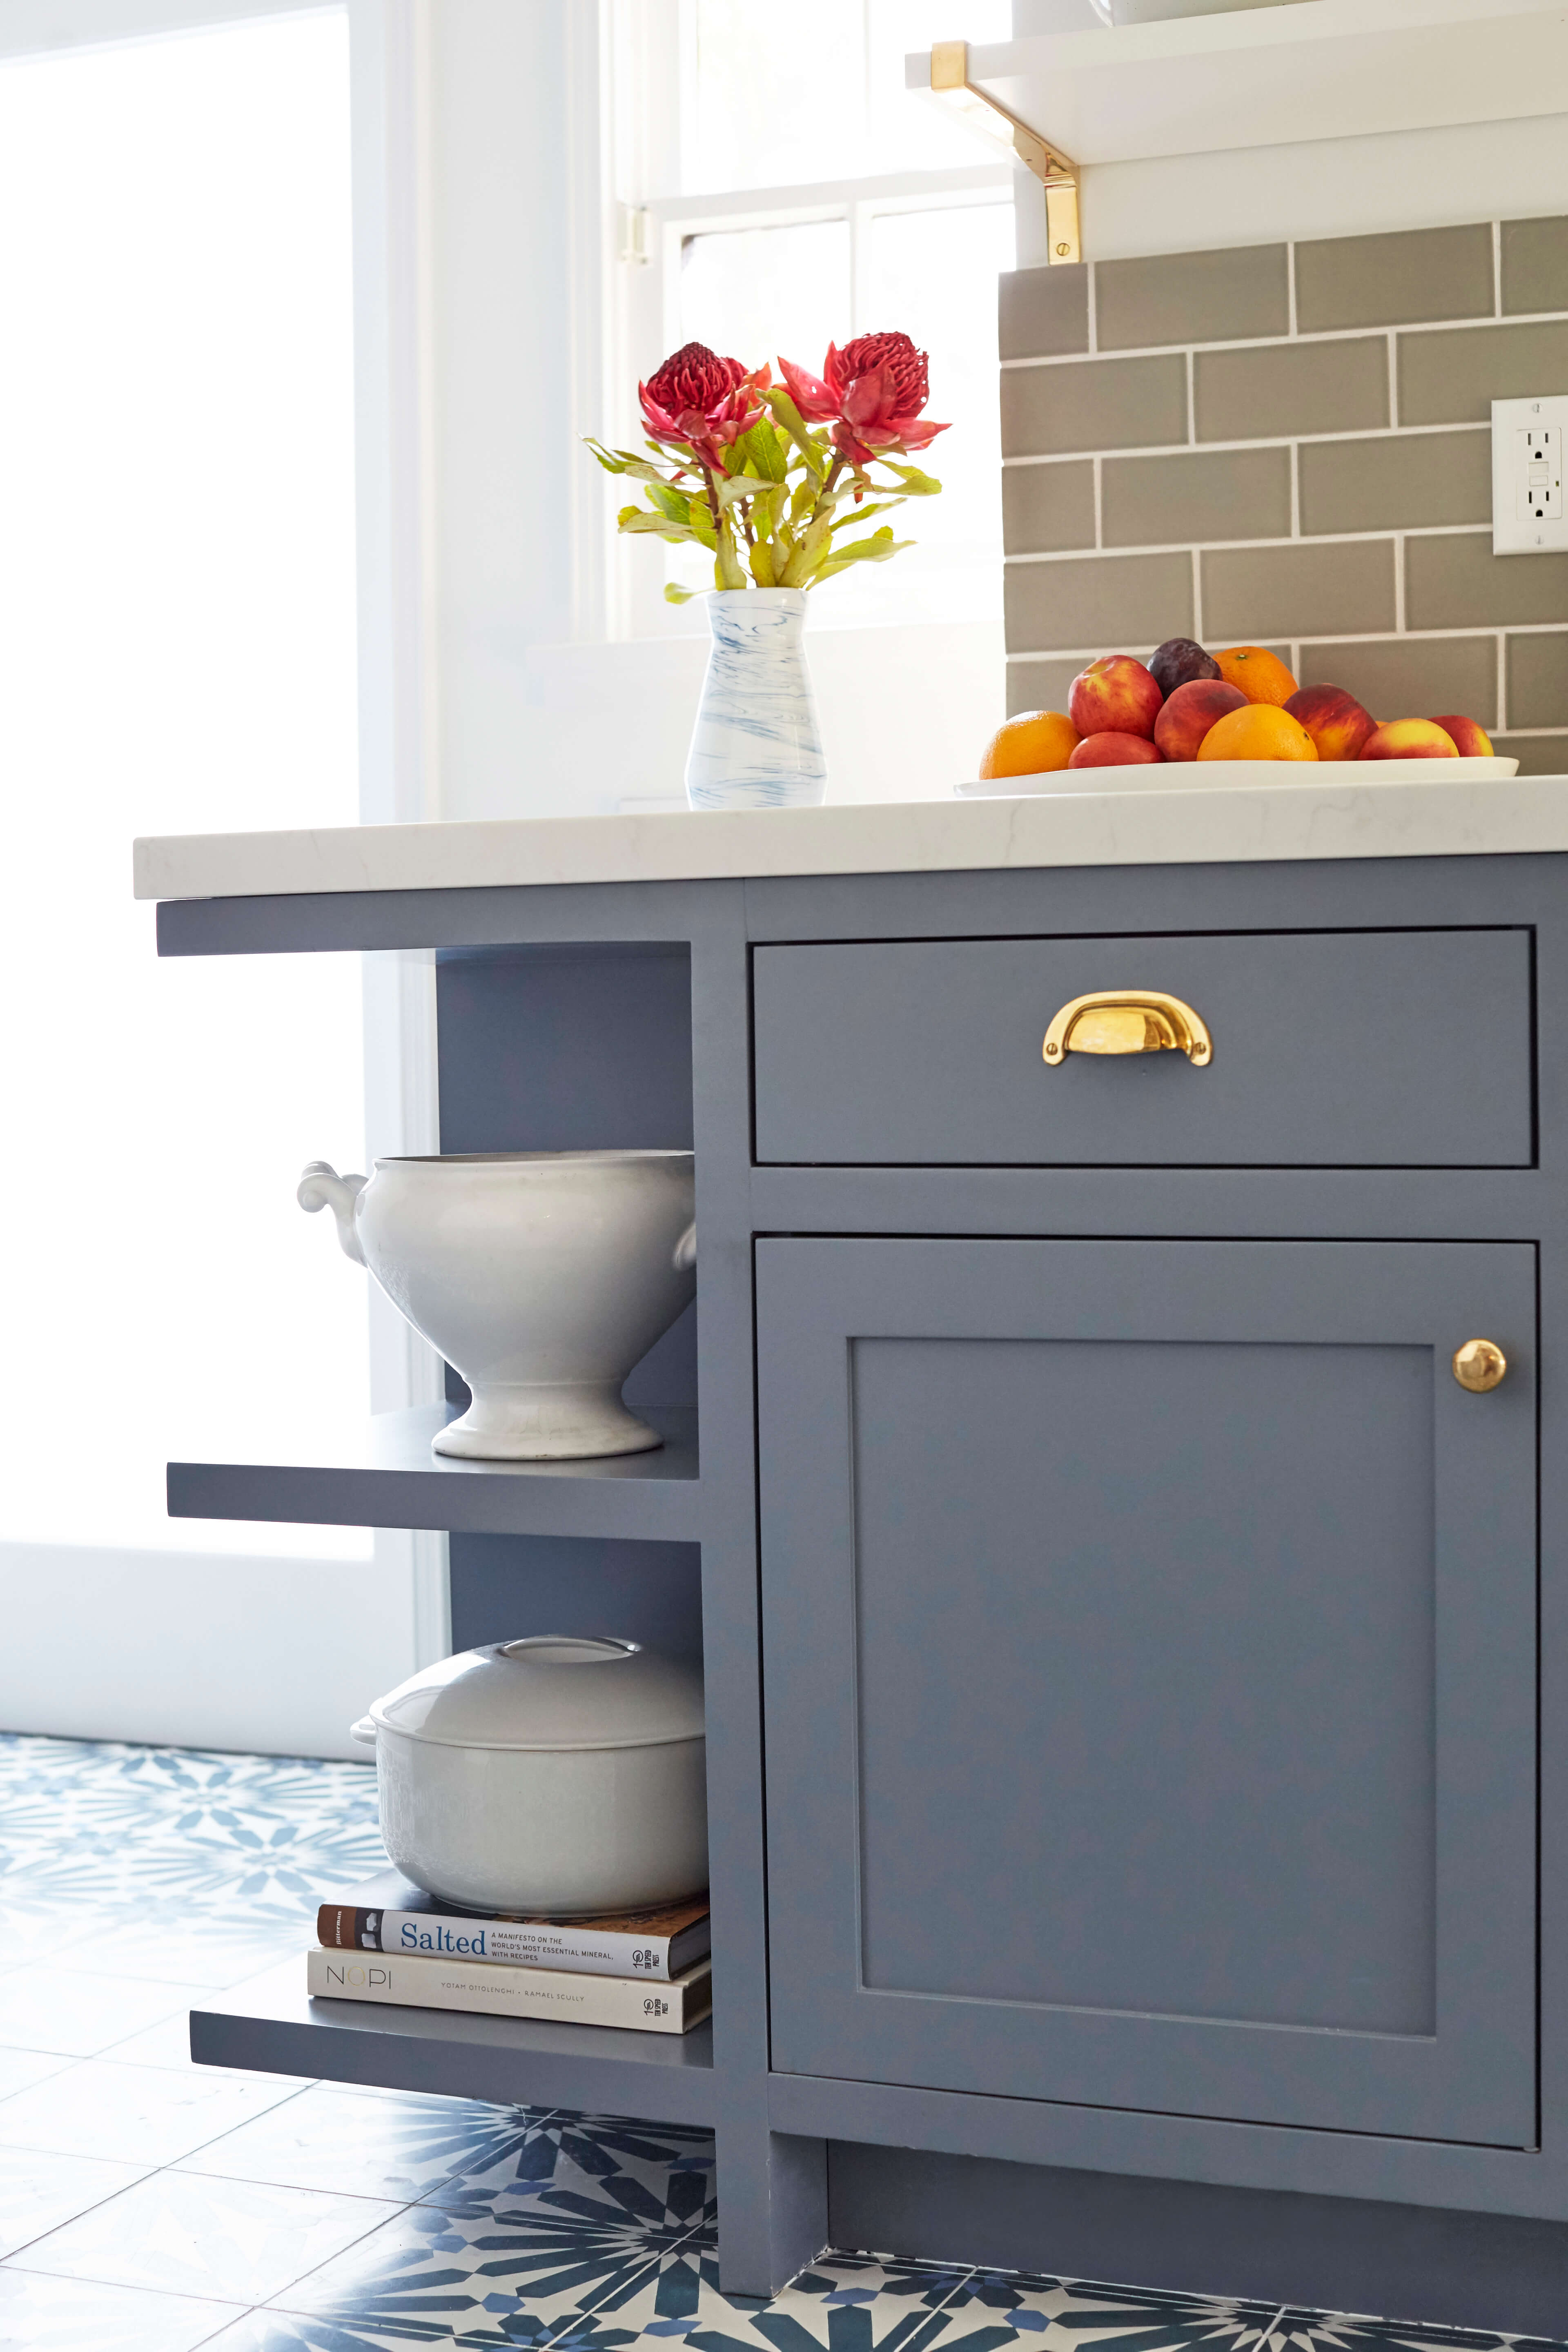 emily _henderson_ginny_macdonald_inset_cabinets